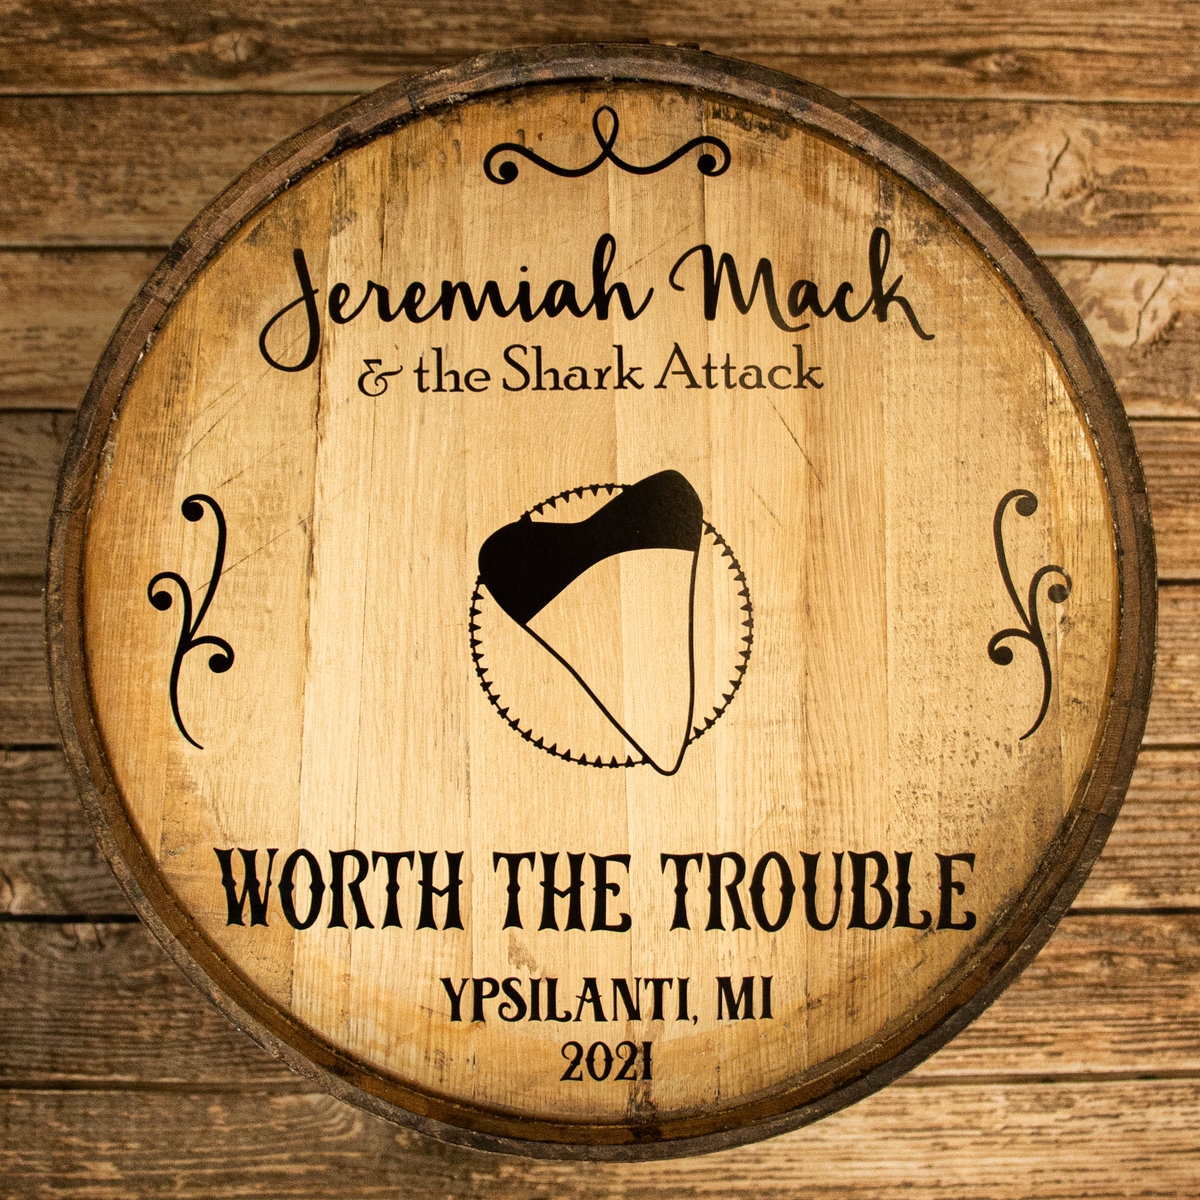 Worth the Trouble artwork